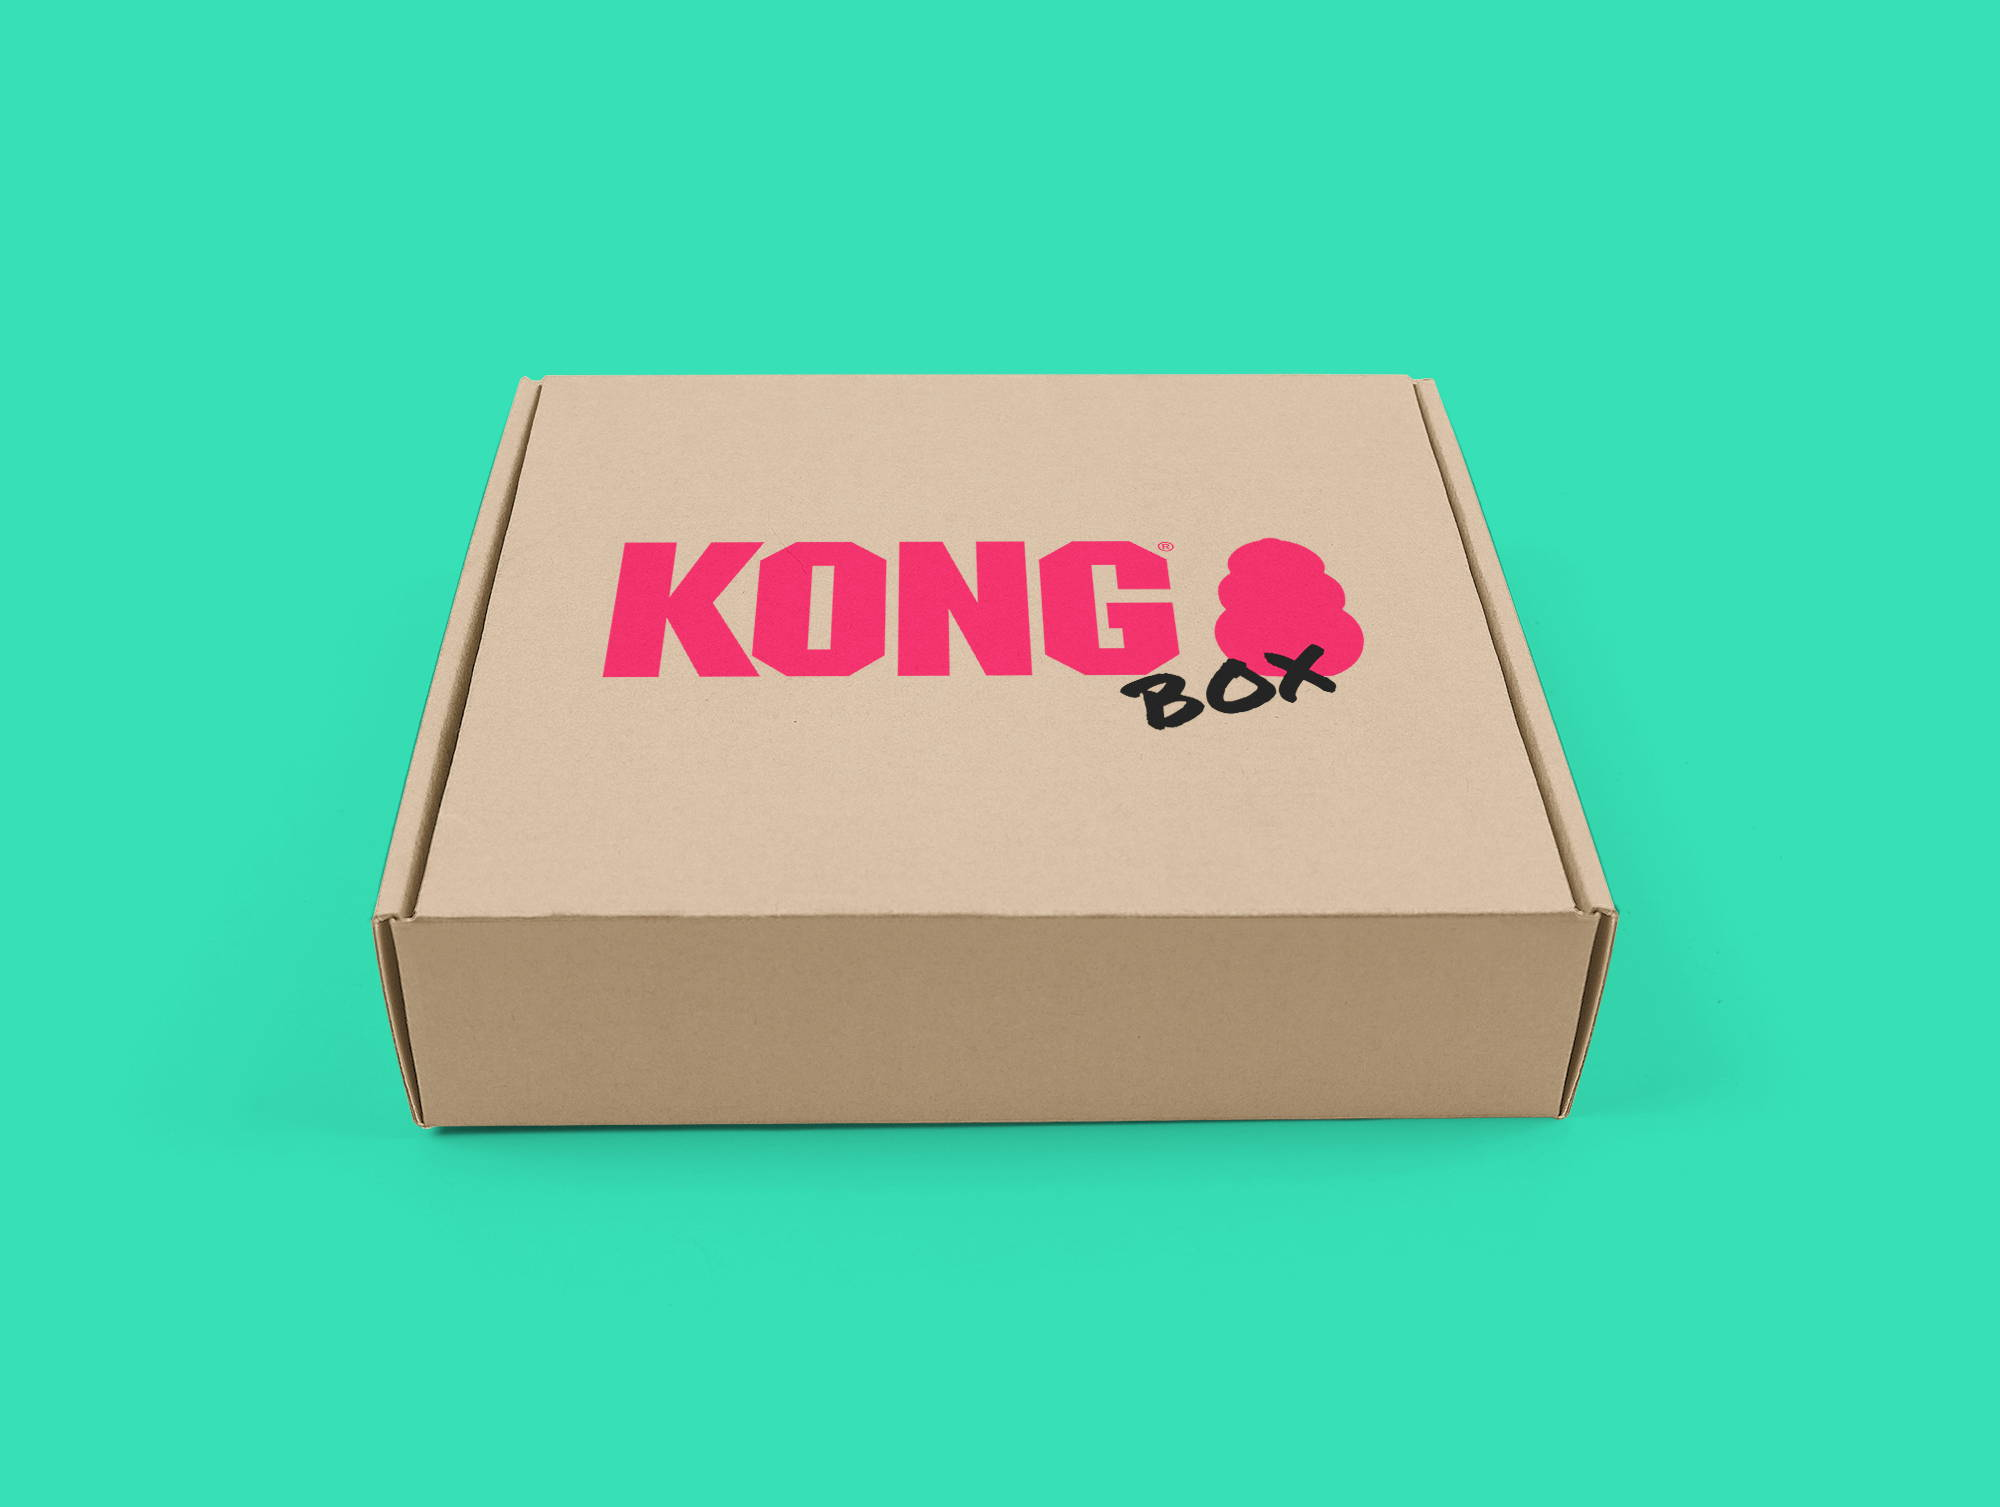 KONG X BARE Surprise Box